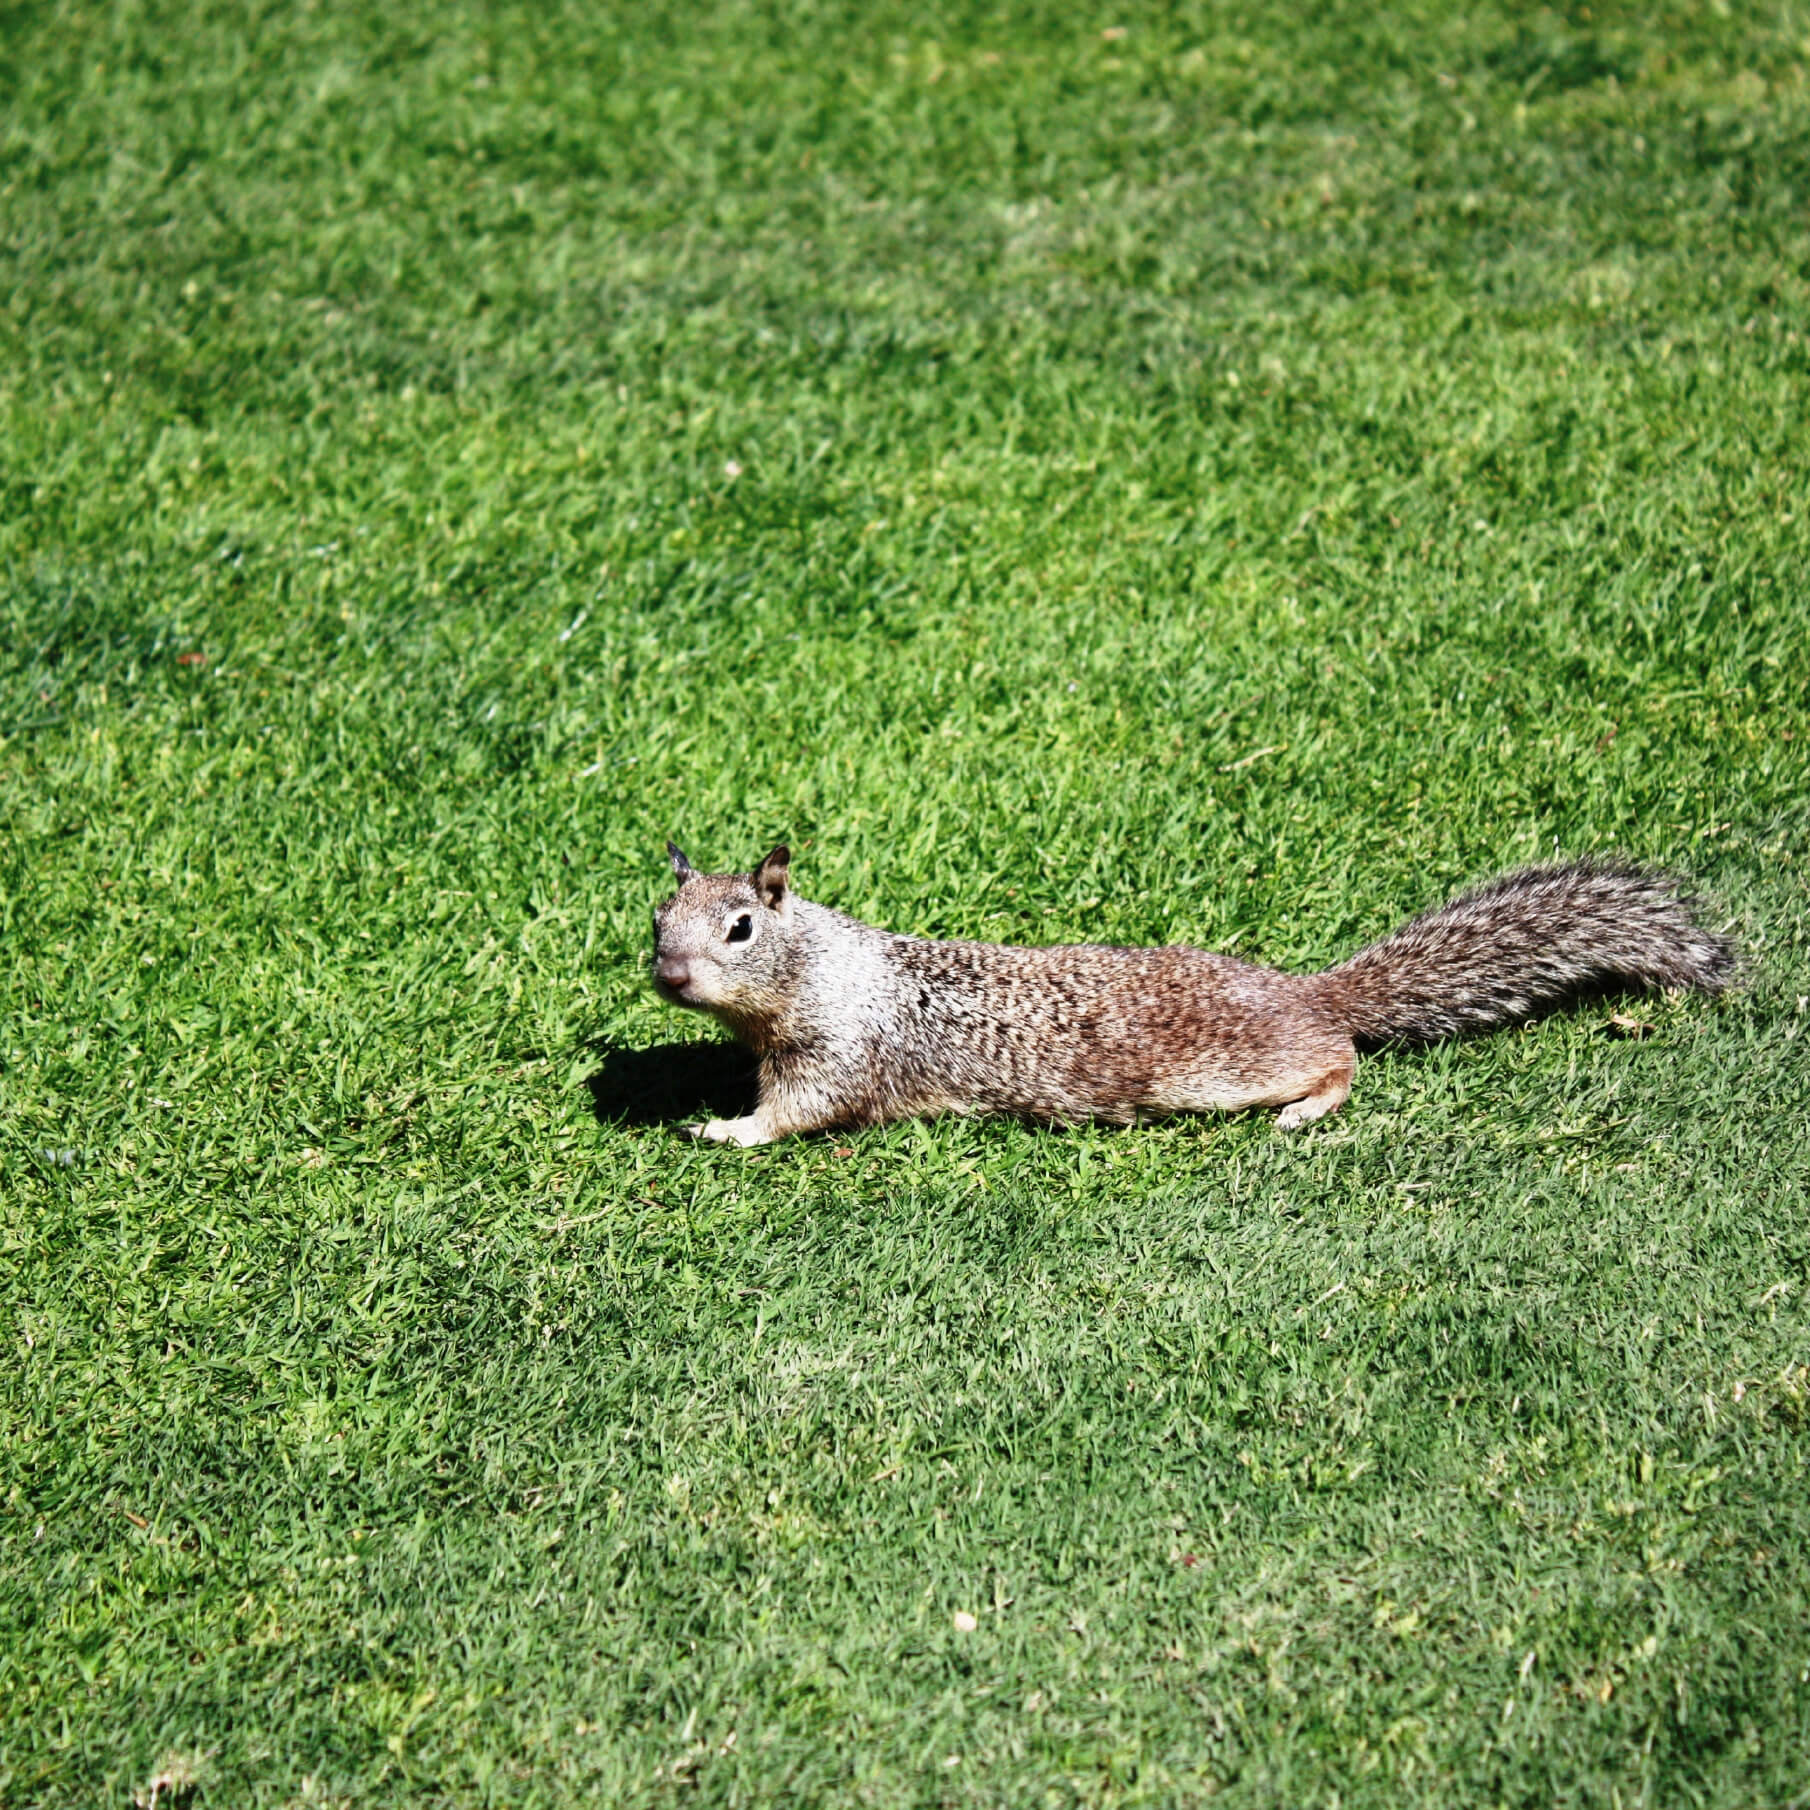 Ground Squirels